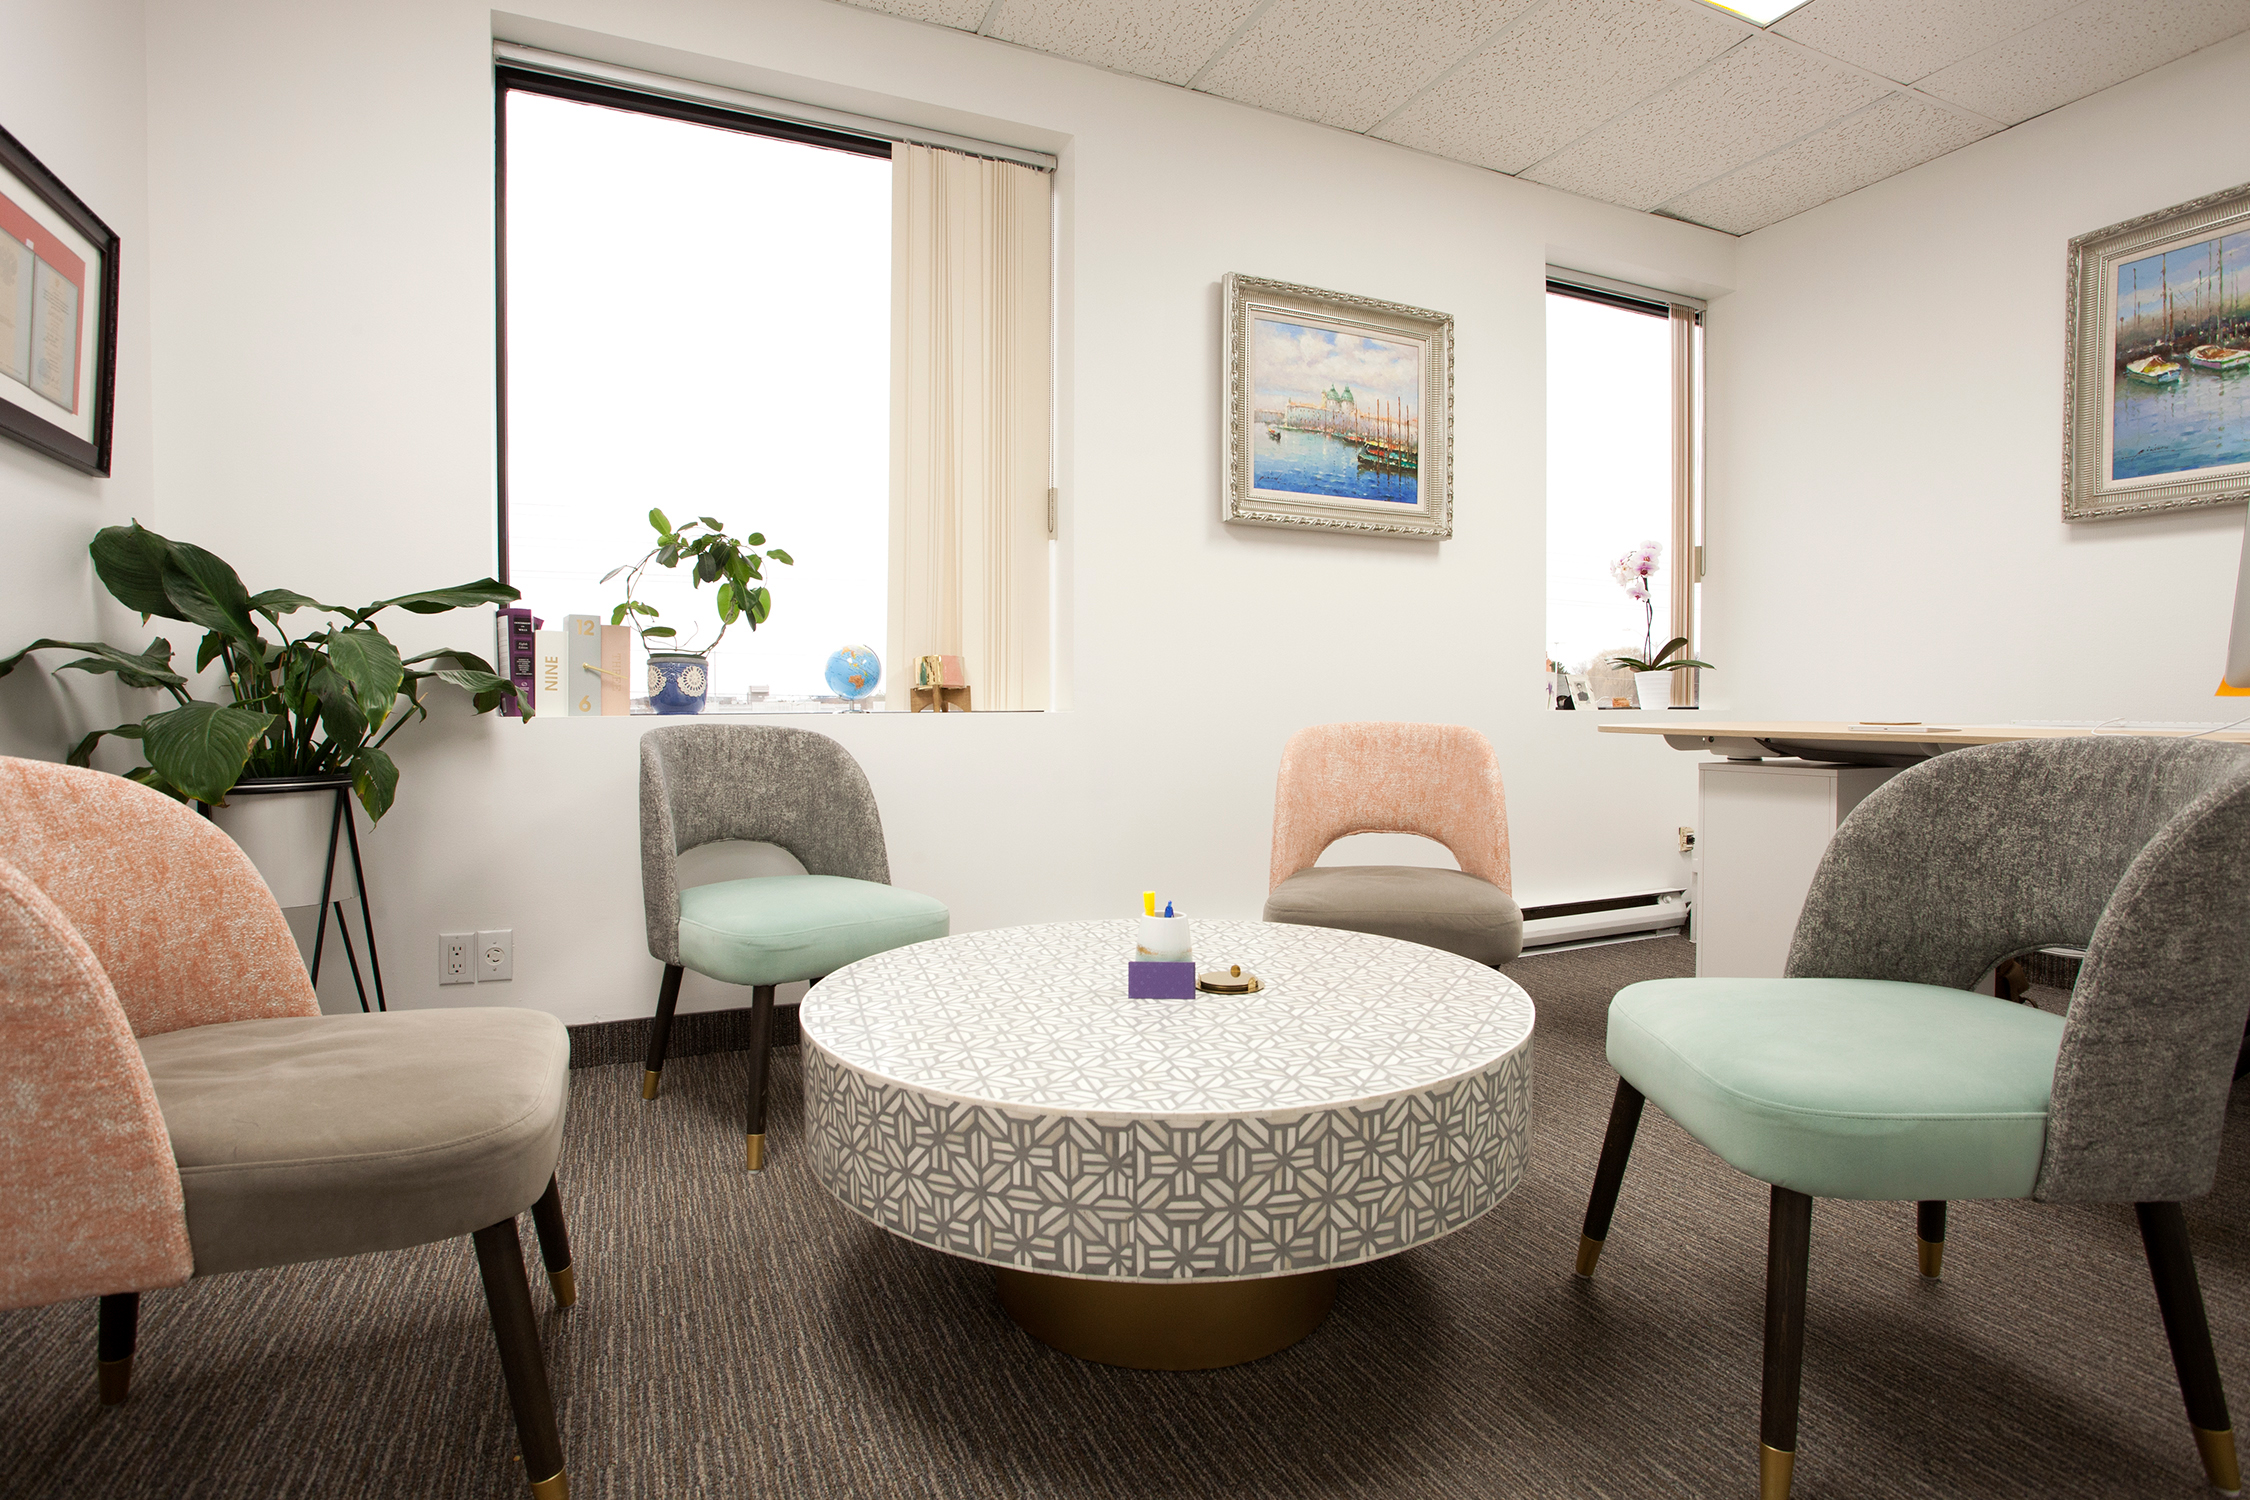 LOYR Law Office Inside design round table chairs pastel colors